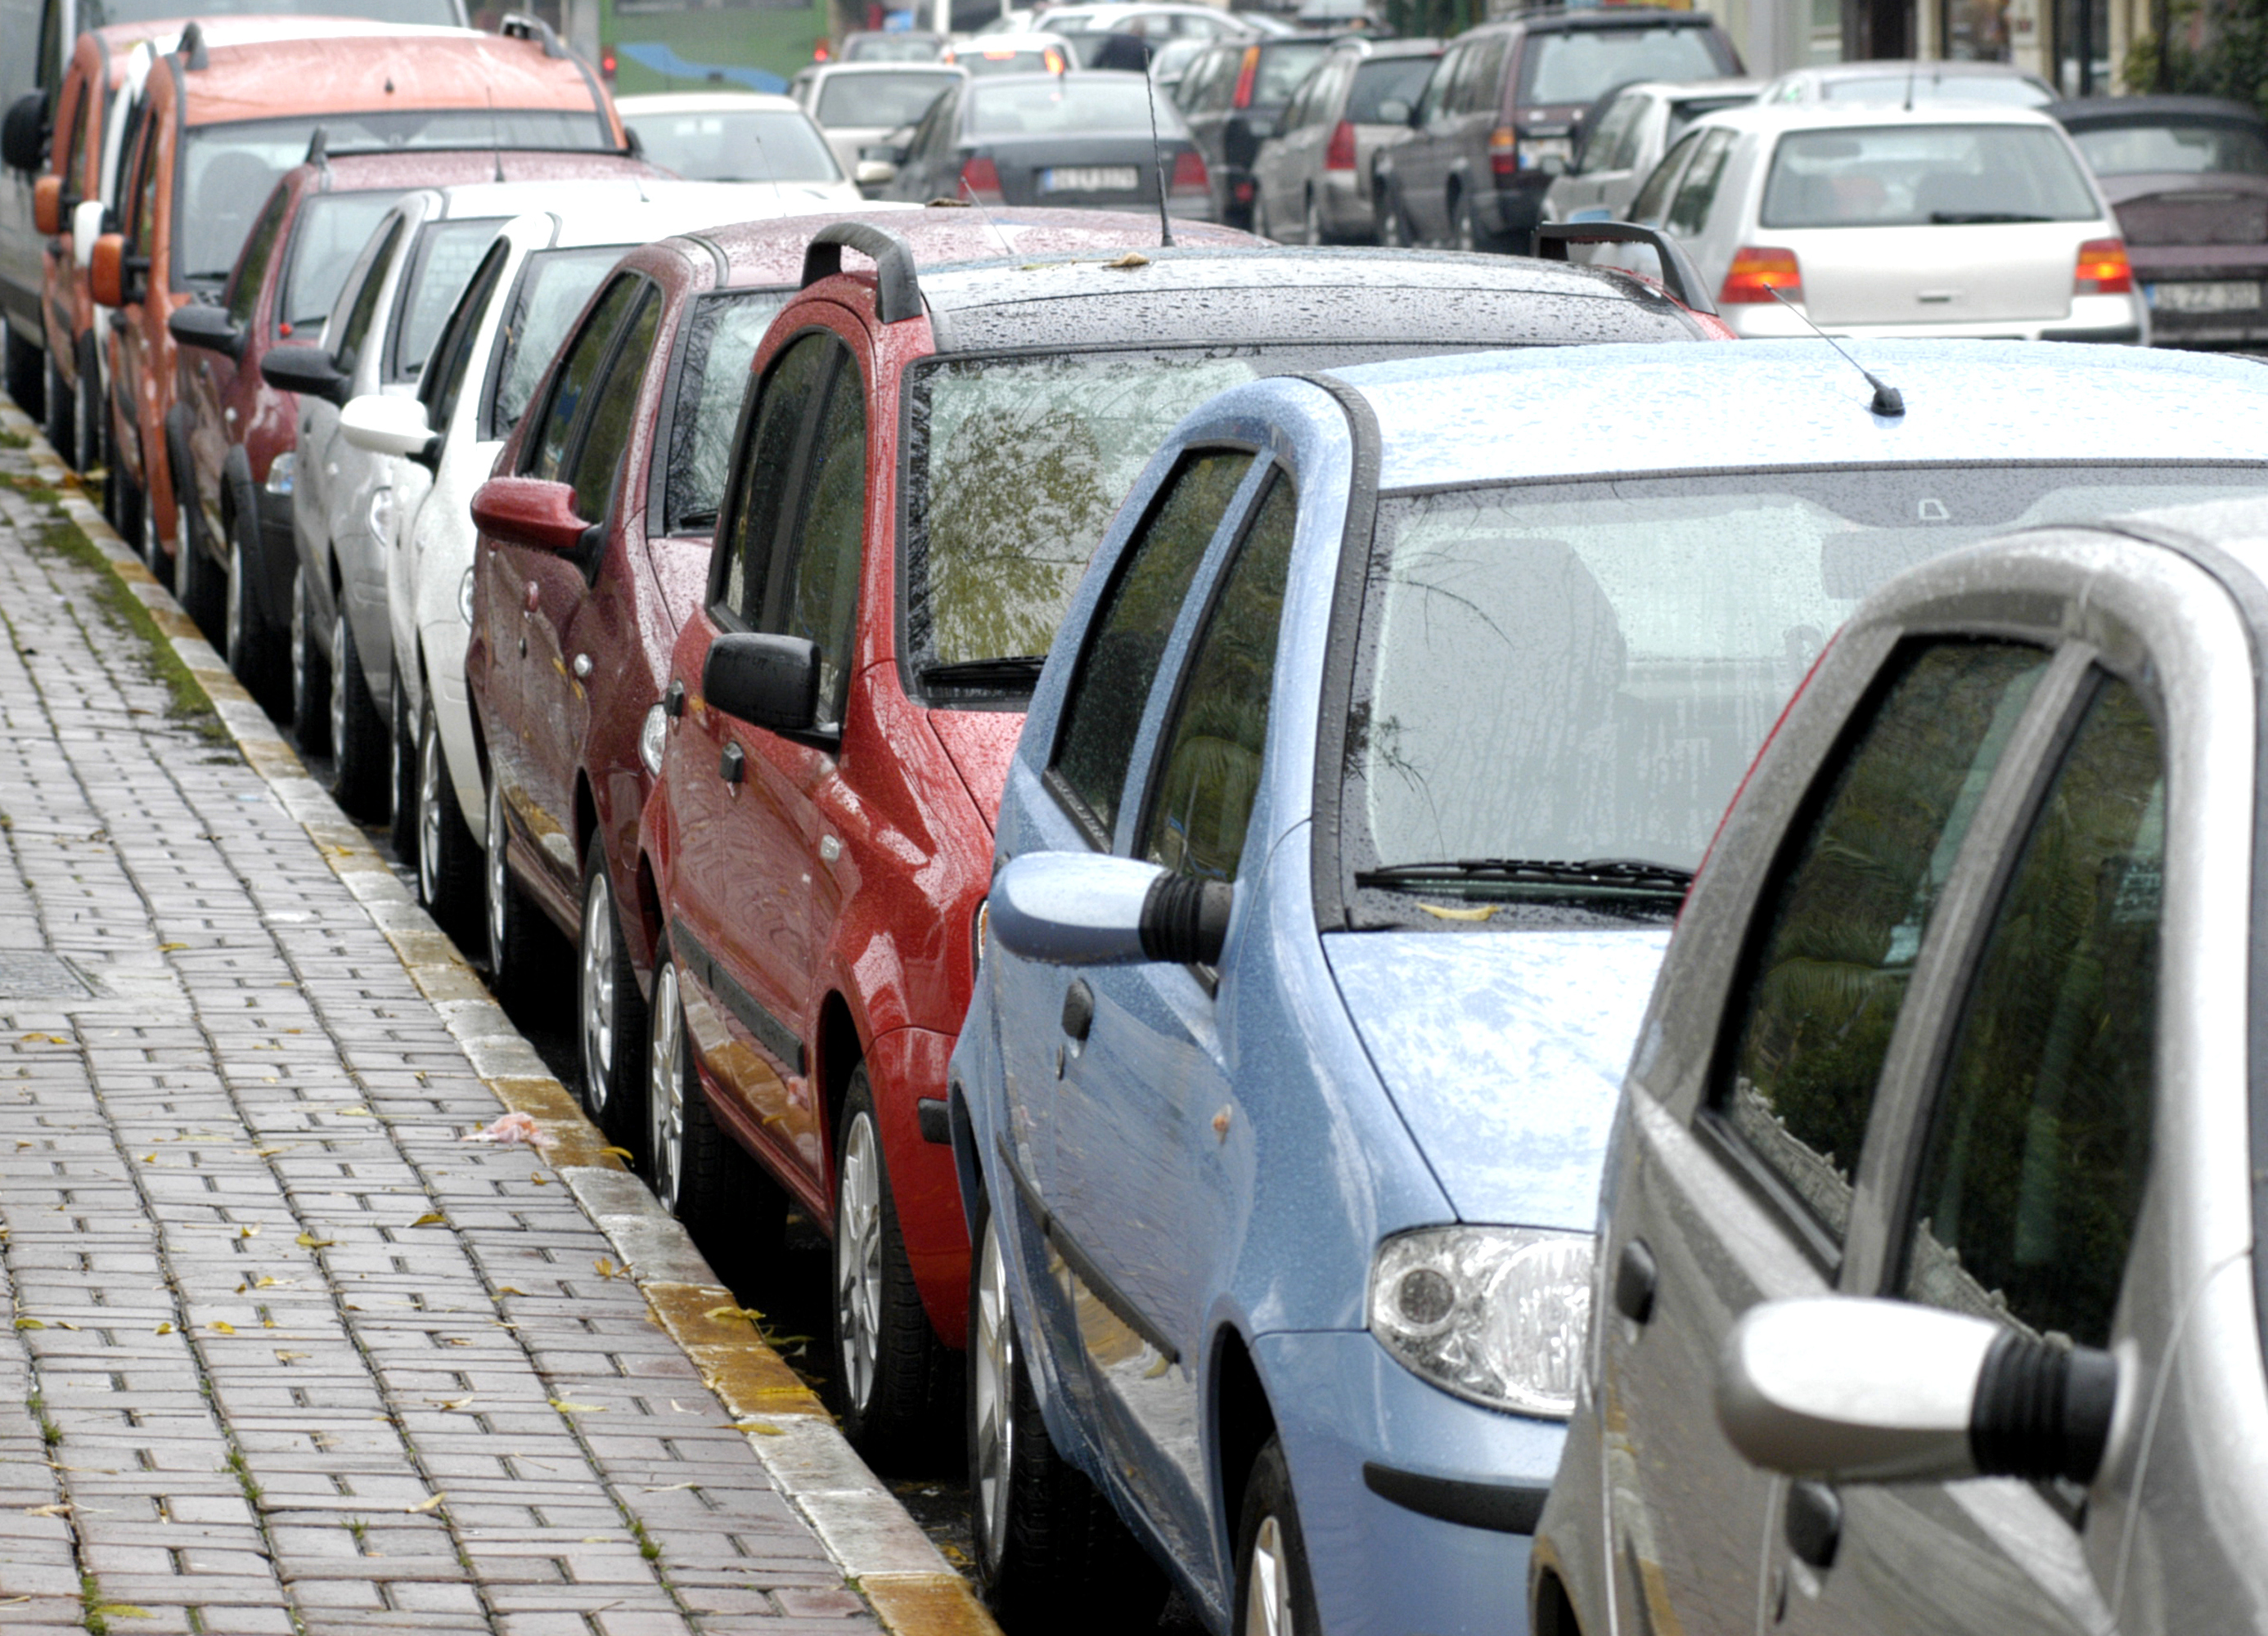 It's Time To Be Smart About Traffic